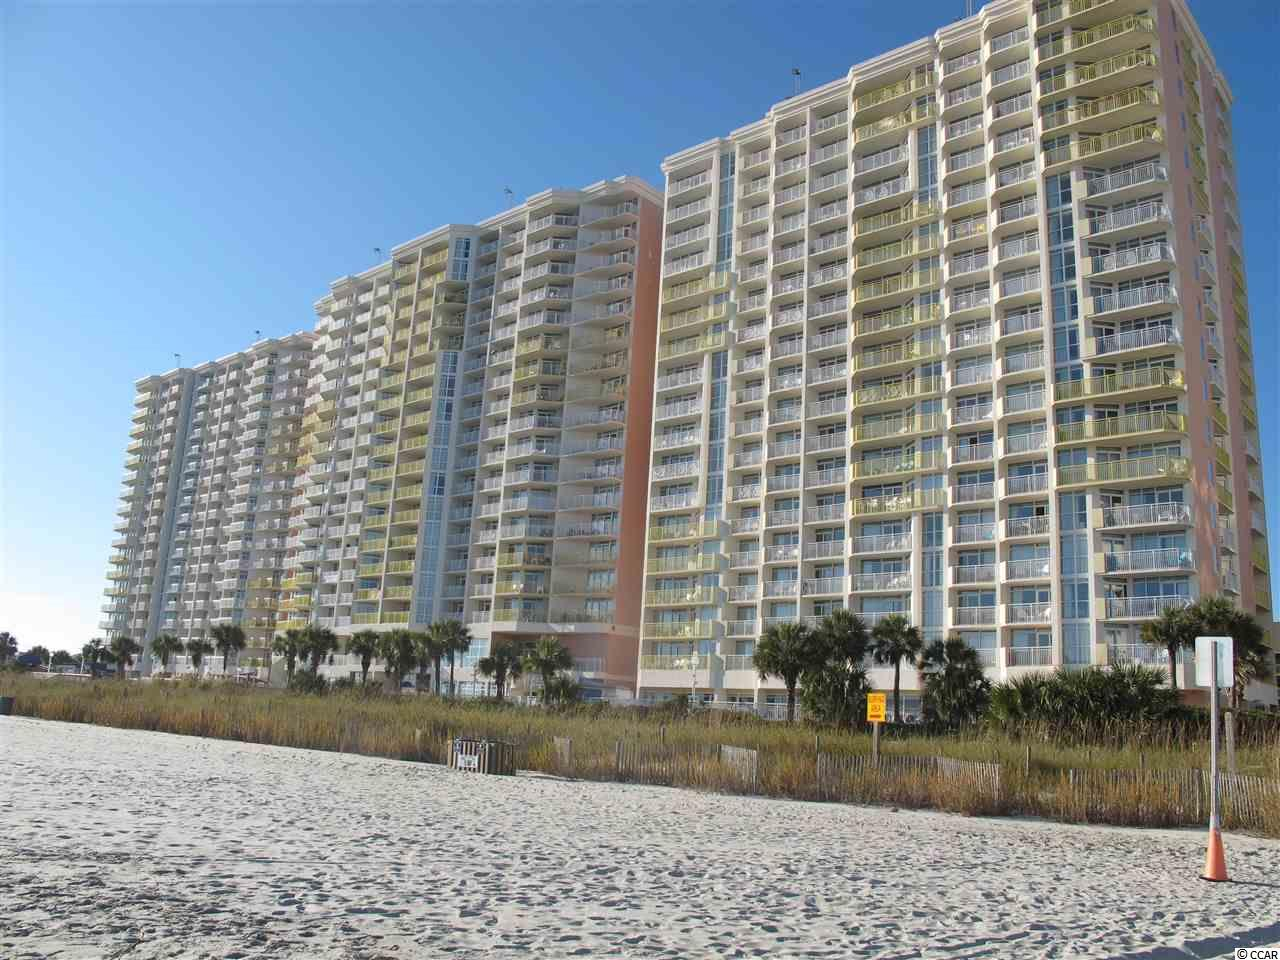 Priced to attract the buyer searching for the ideal oceanfront weekend getaway.  Unit sleeps 6 as it also has a murphy bed. Current owner does not rent. Ask your agent to share this property with you. The condominium unit is lovingly maintained. With reasonable monthly HOA fees, the owner has NO UTILITY bills. Fabulous ocean front views at a wonderful mid-height in the building. The amenities at BayWatch are astounding. Enjoy two restaurants, fitness center, pools so numerous you will be amazed. Lazy rivers, indoor pools, kiddie pools, hot tubs, gift shop, parking garage, etc. For the investor who may choose to engage rentals through the condotel front desk, this is one of the few facilities catering to conventions with wonderful conference rooms on the second floor of the middle tower. Catering to meetings and even wedding parties the front desk will be grateful to assist with your rental desires. These conference rooms also front along the ocean.